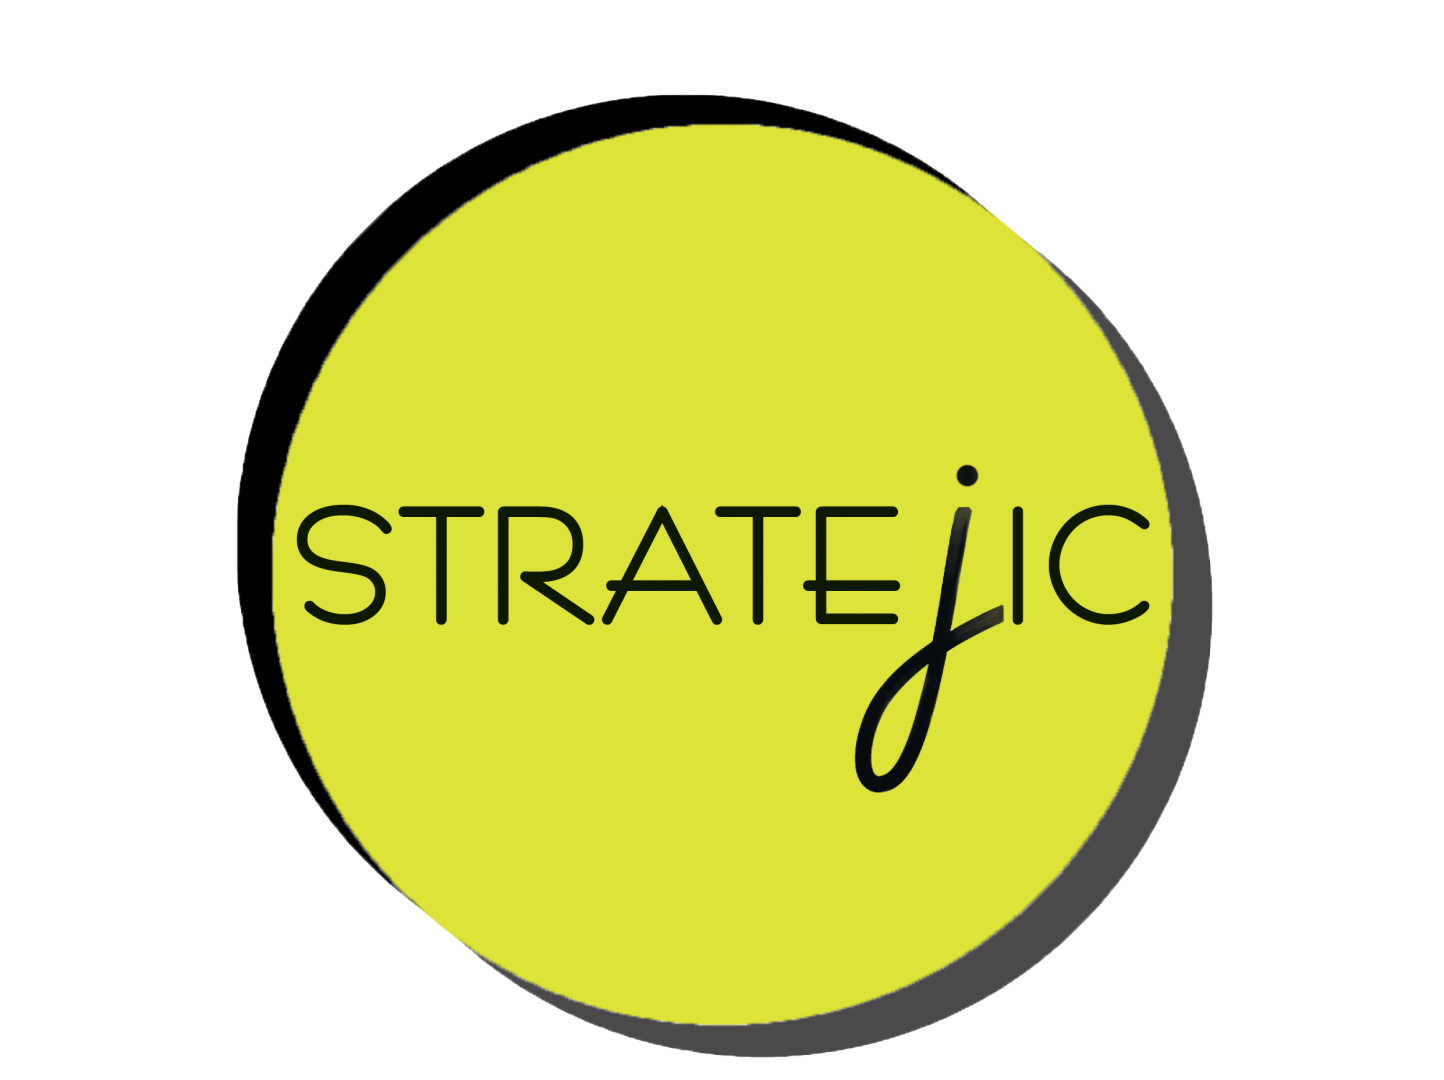 Association Stratejic